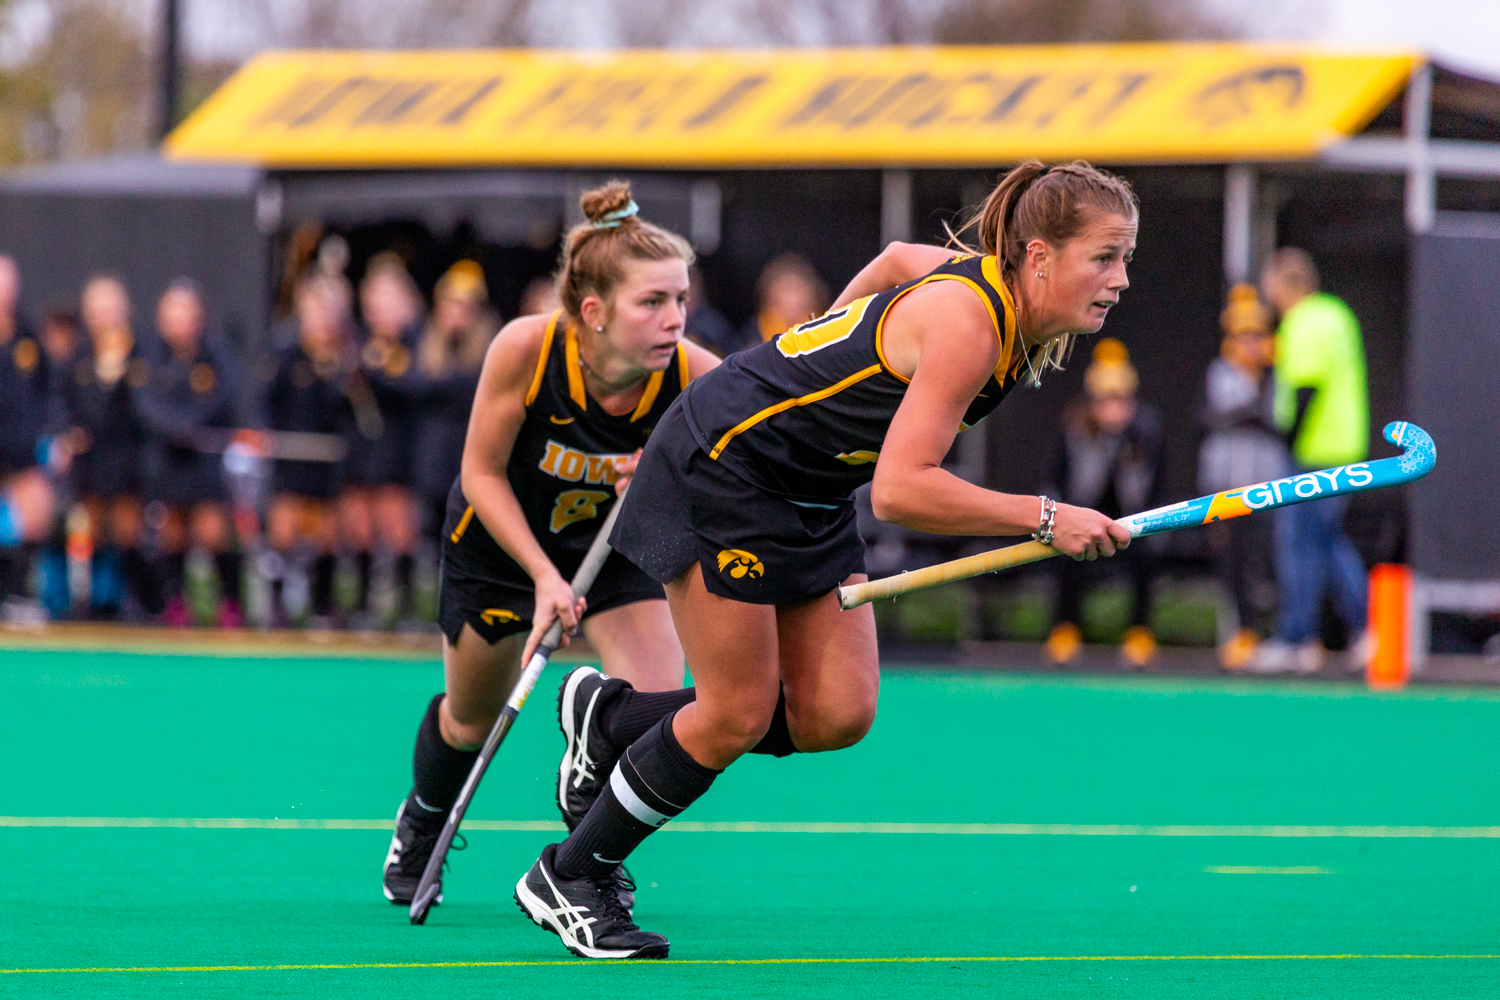 Iowa midfielder Nikki Freeman and Iowa midfielder Sophie Sunderland sprint off their line during a penally corner during a field hockey match against Penn State on Friday, Oct. 12, 2018. The No. 8 ranked Hawkeyes defeated the No. 6 ranked Nittany Lions 3-2.